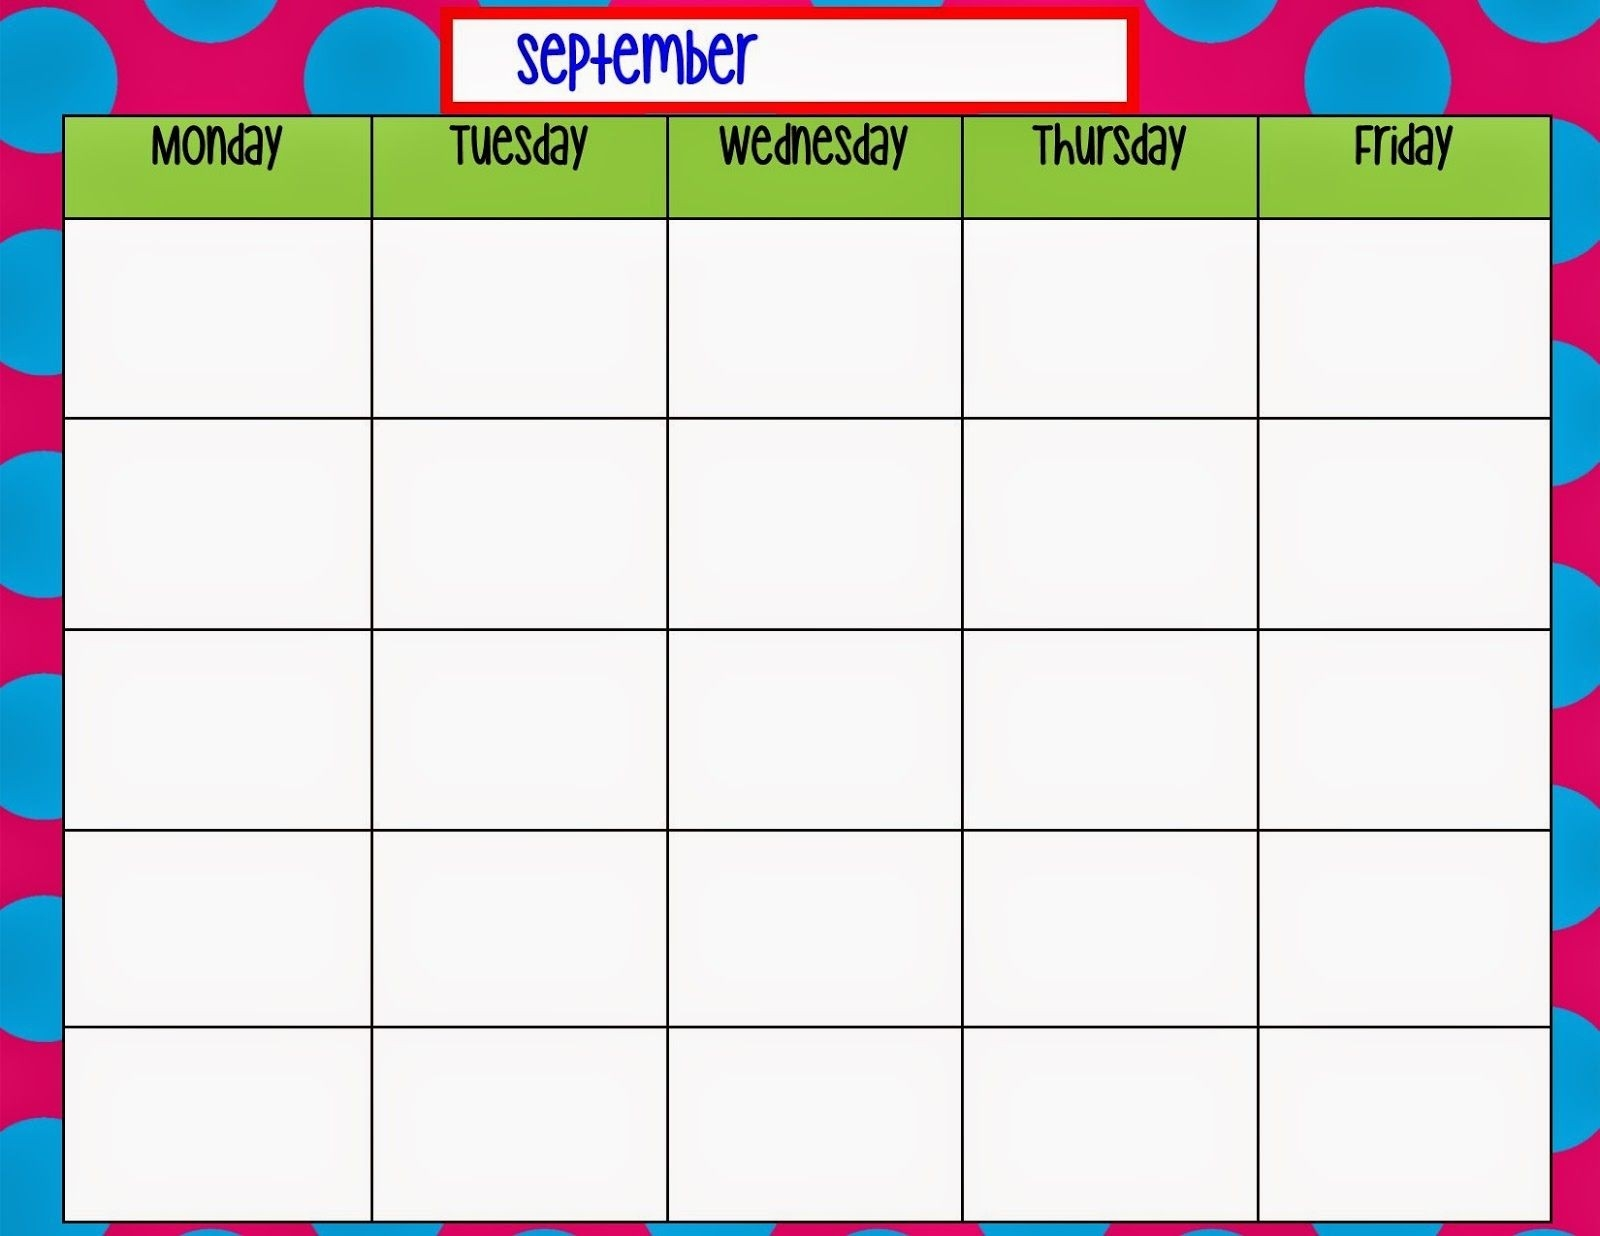 Monday Through Friday Calendar Template | Preschool | Weekly-Monday To Friday Schedule Template